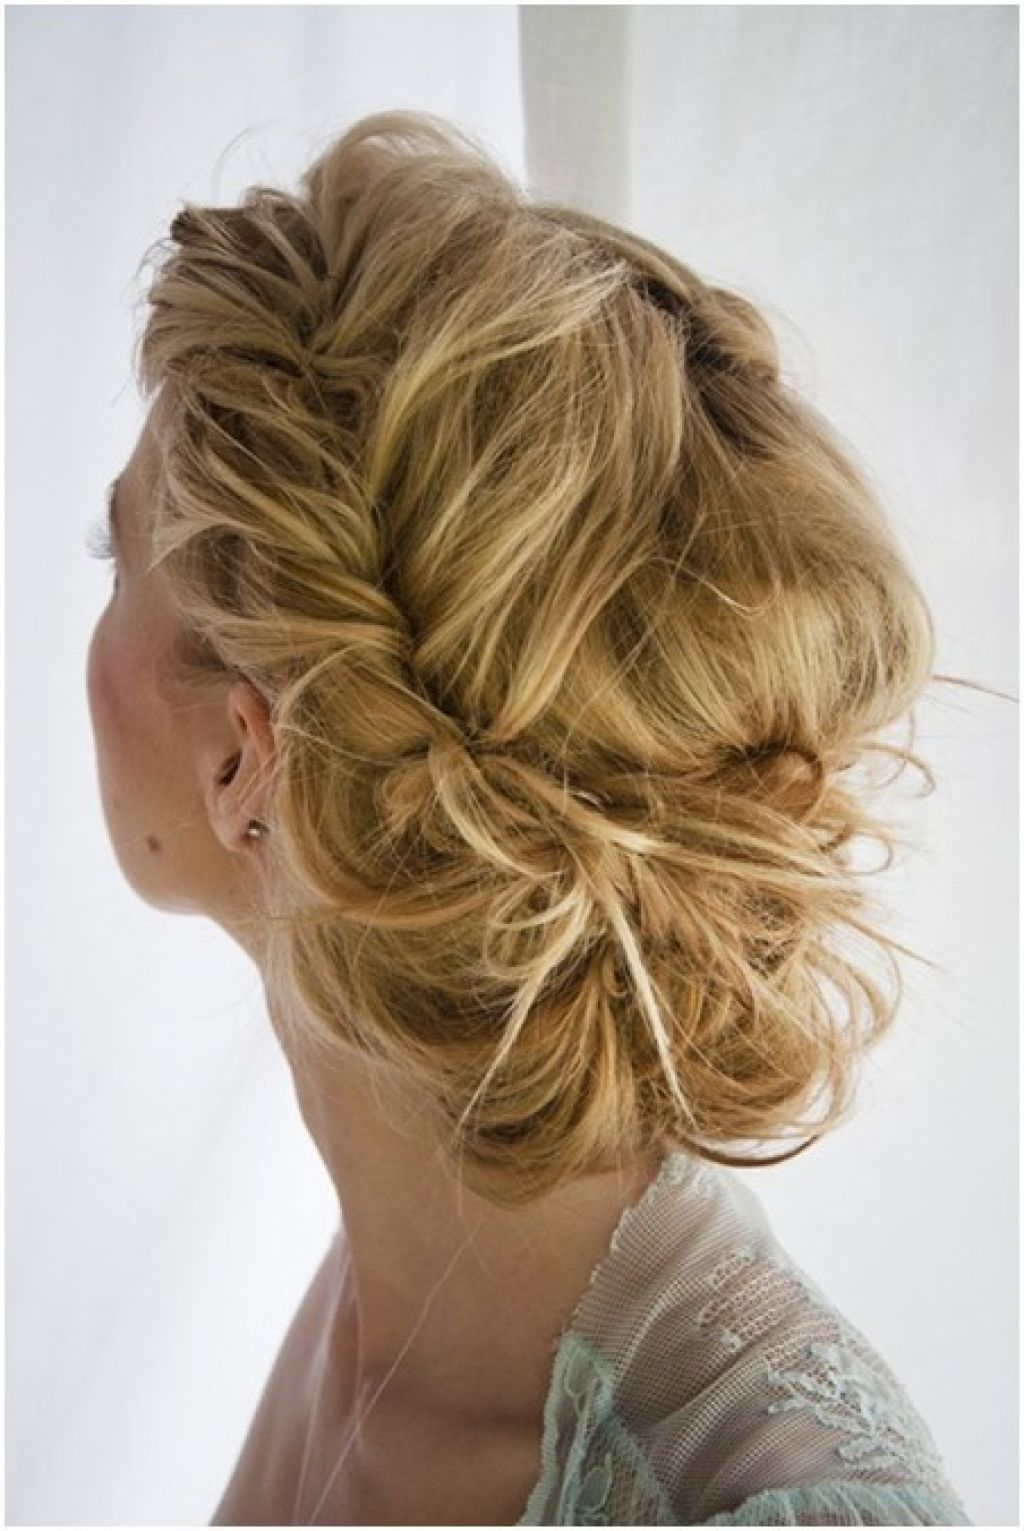 Prom Updo Hairstyles Medium Length Hair - Prom Hairstyles ...